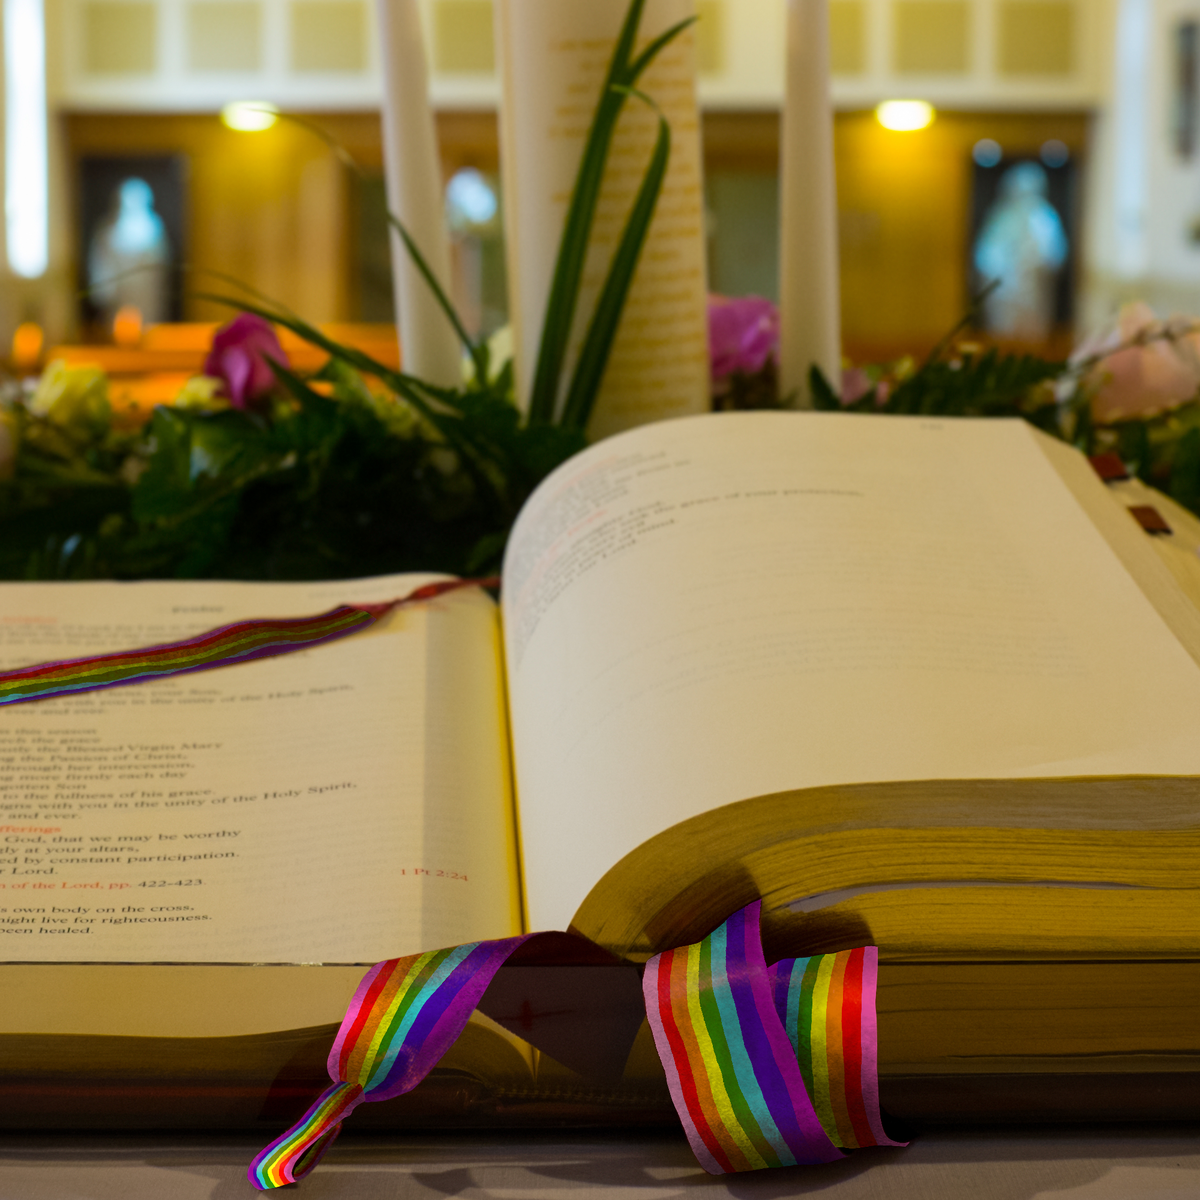 To Christians arguing 'no' on marriage equality: the Bible